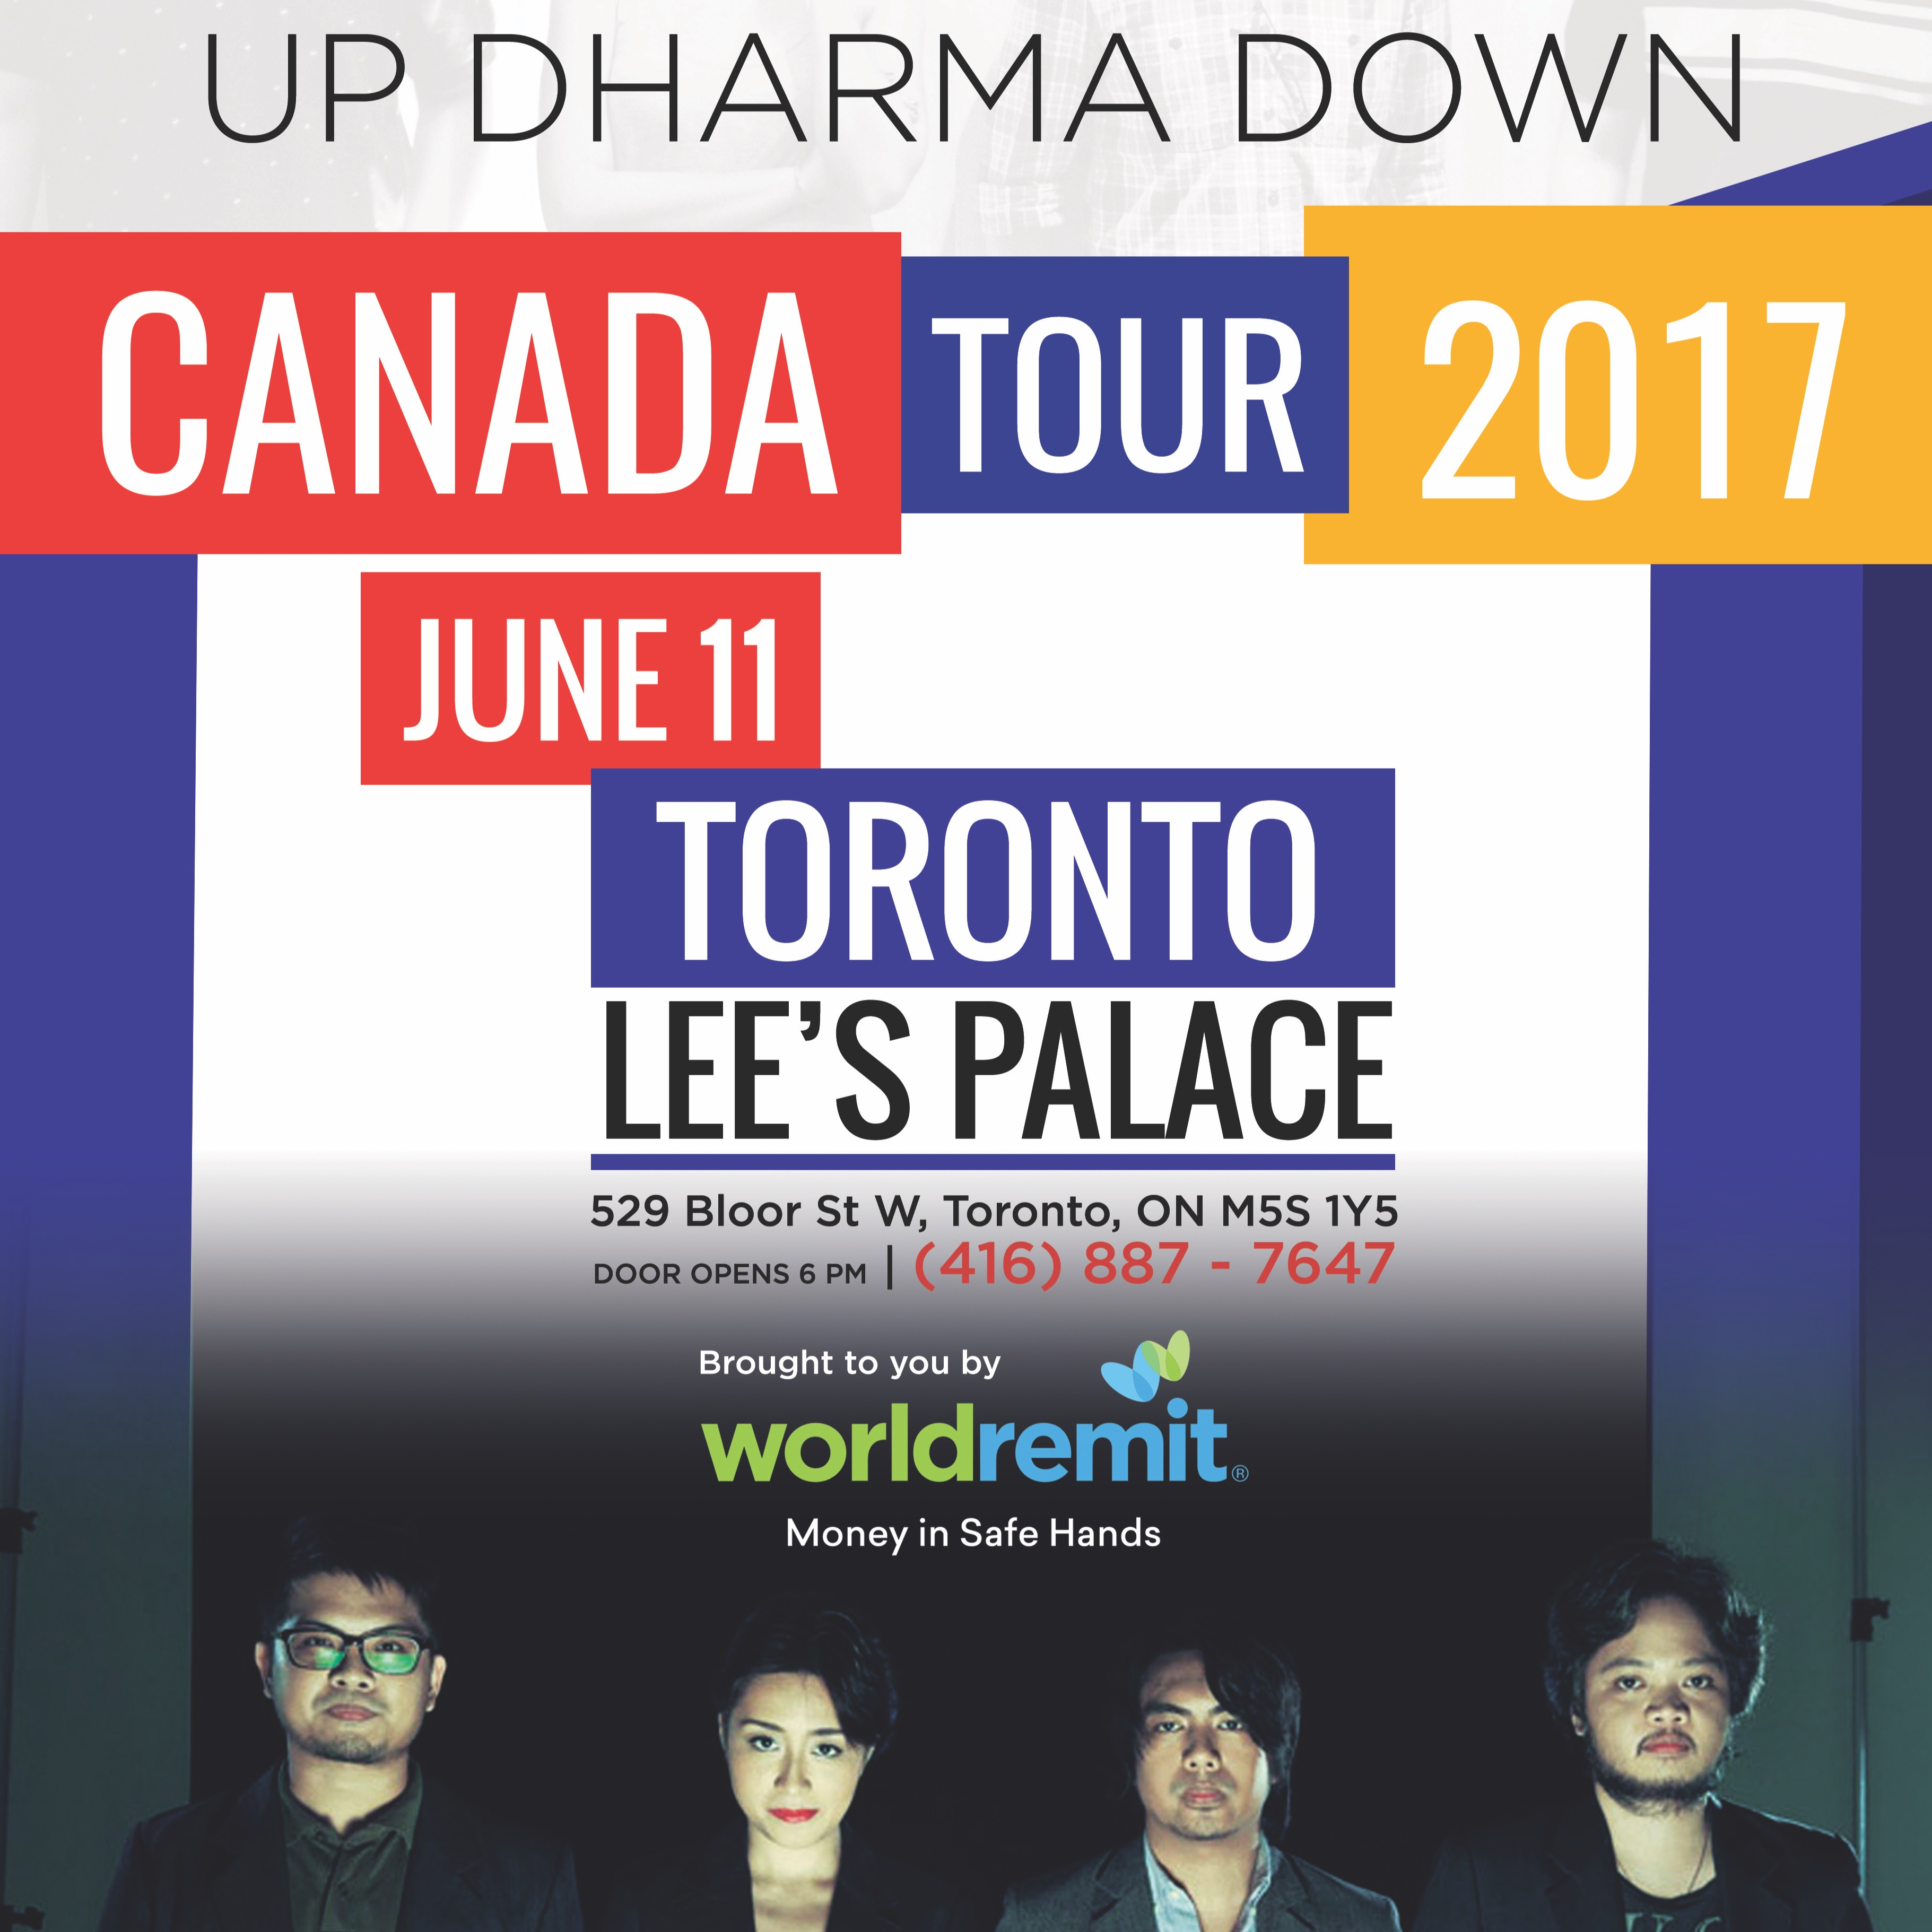 UDD (Up Dharma Down) Live in Toronto!